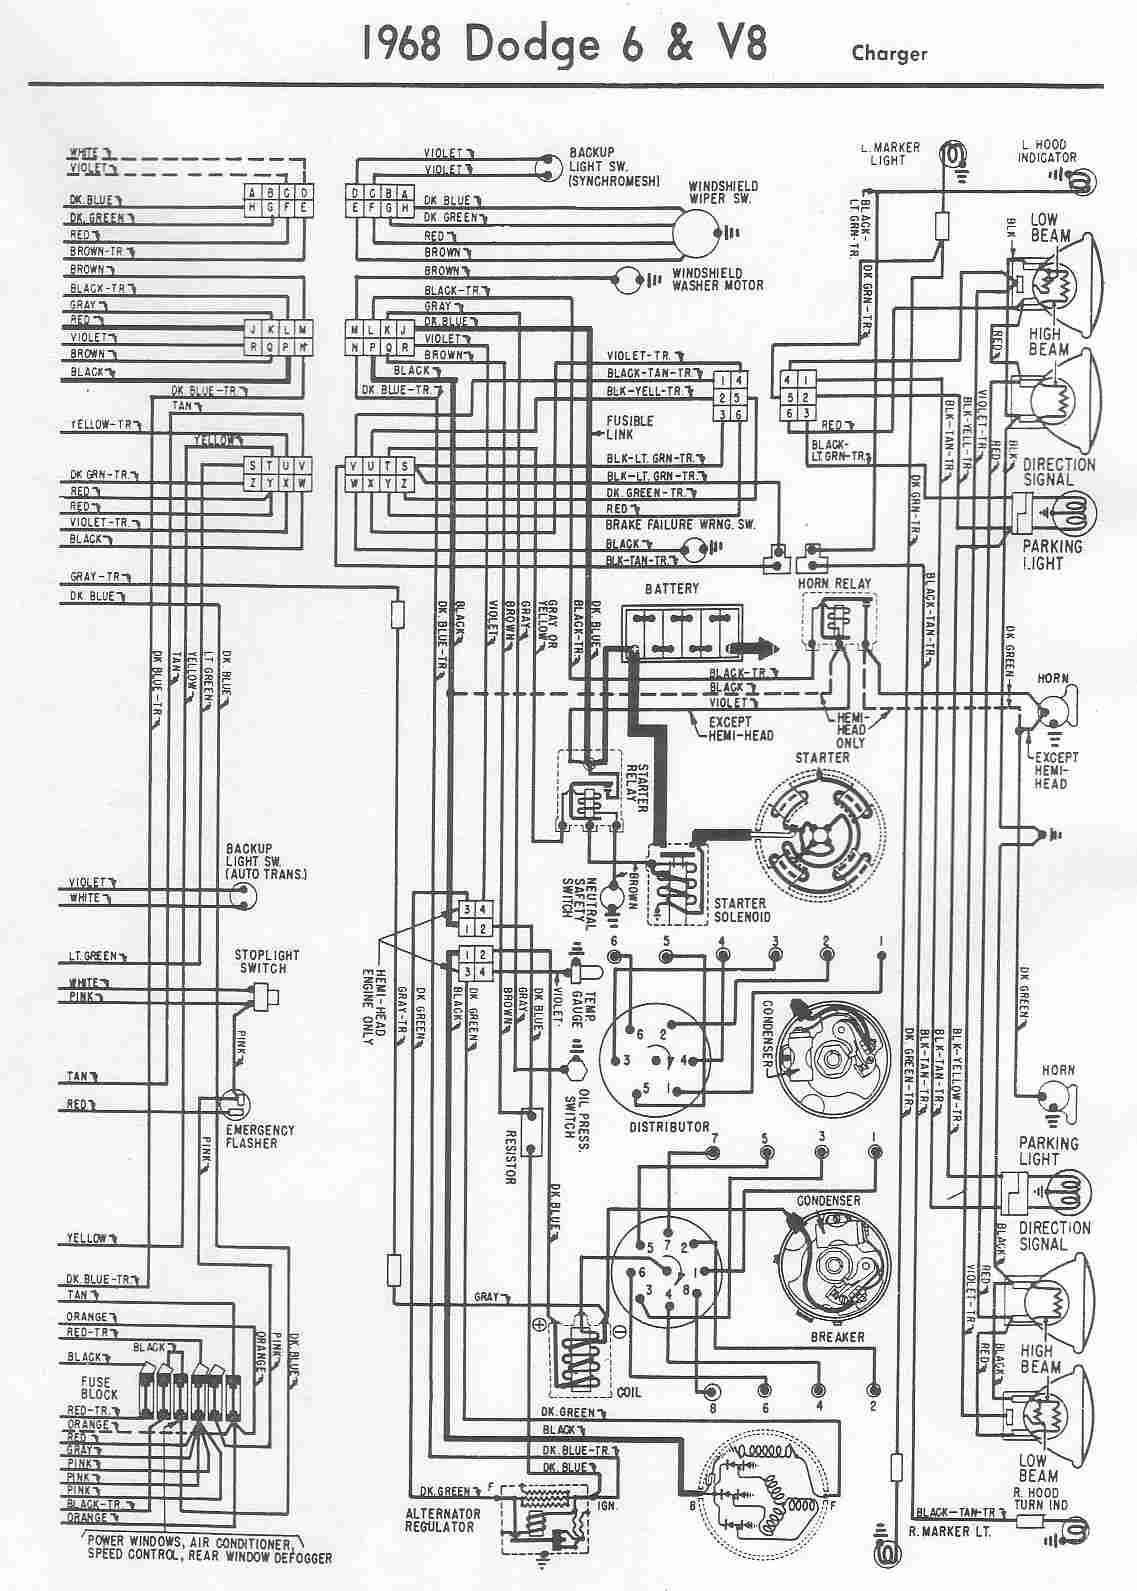 charger electrical wiring diagram of 1968 dodge 6 and v8?t\=1508404771 1970 dodge dart wiring diagram 1970 dodge dart colors \u2022 free 2008 dodge charger wiring diagram at soozxer.org